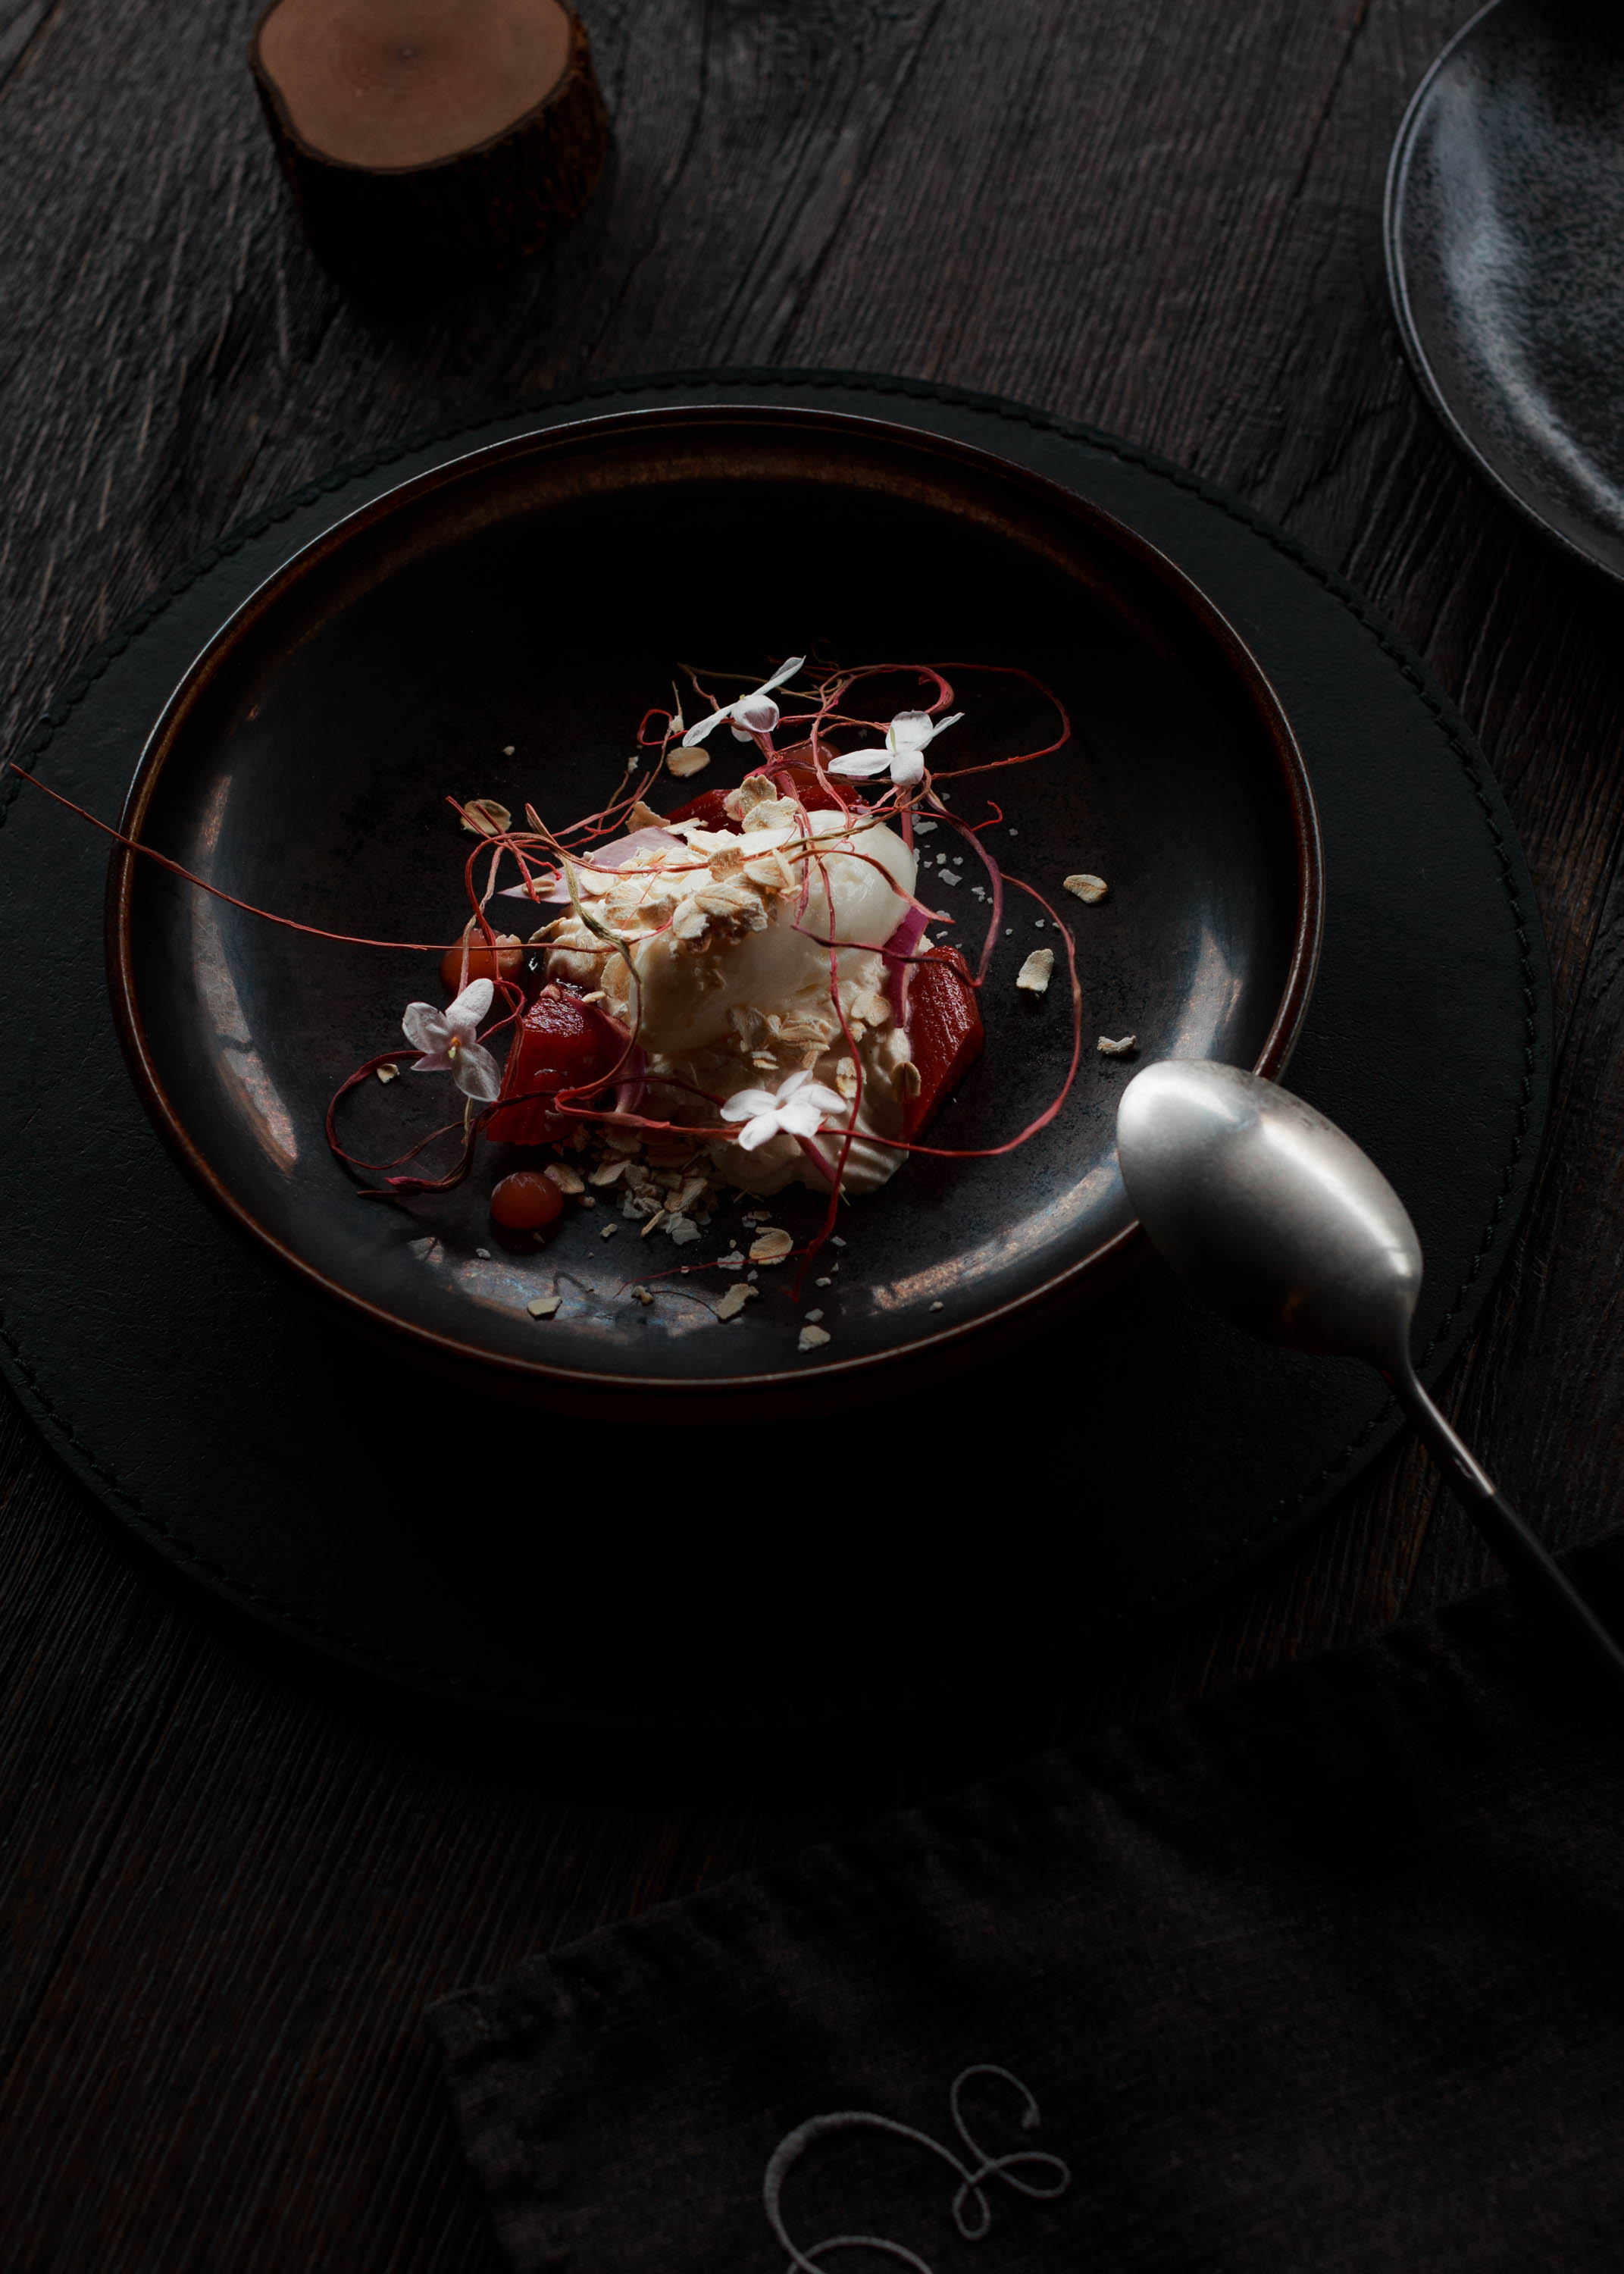 estelle-scott-pickett-melbourne-food-photography-dessert